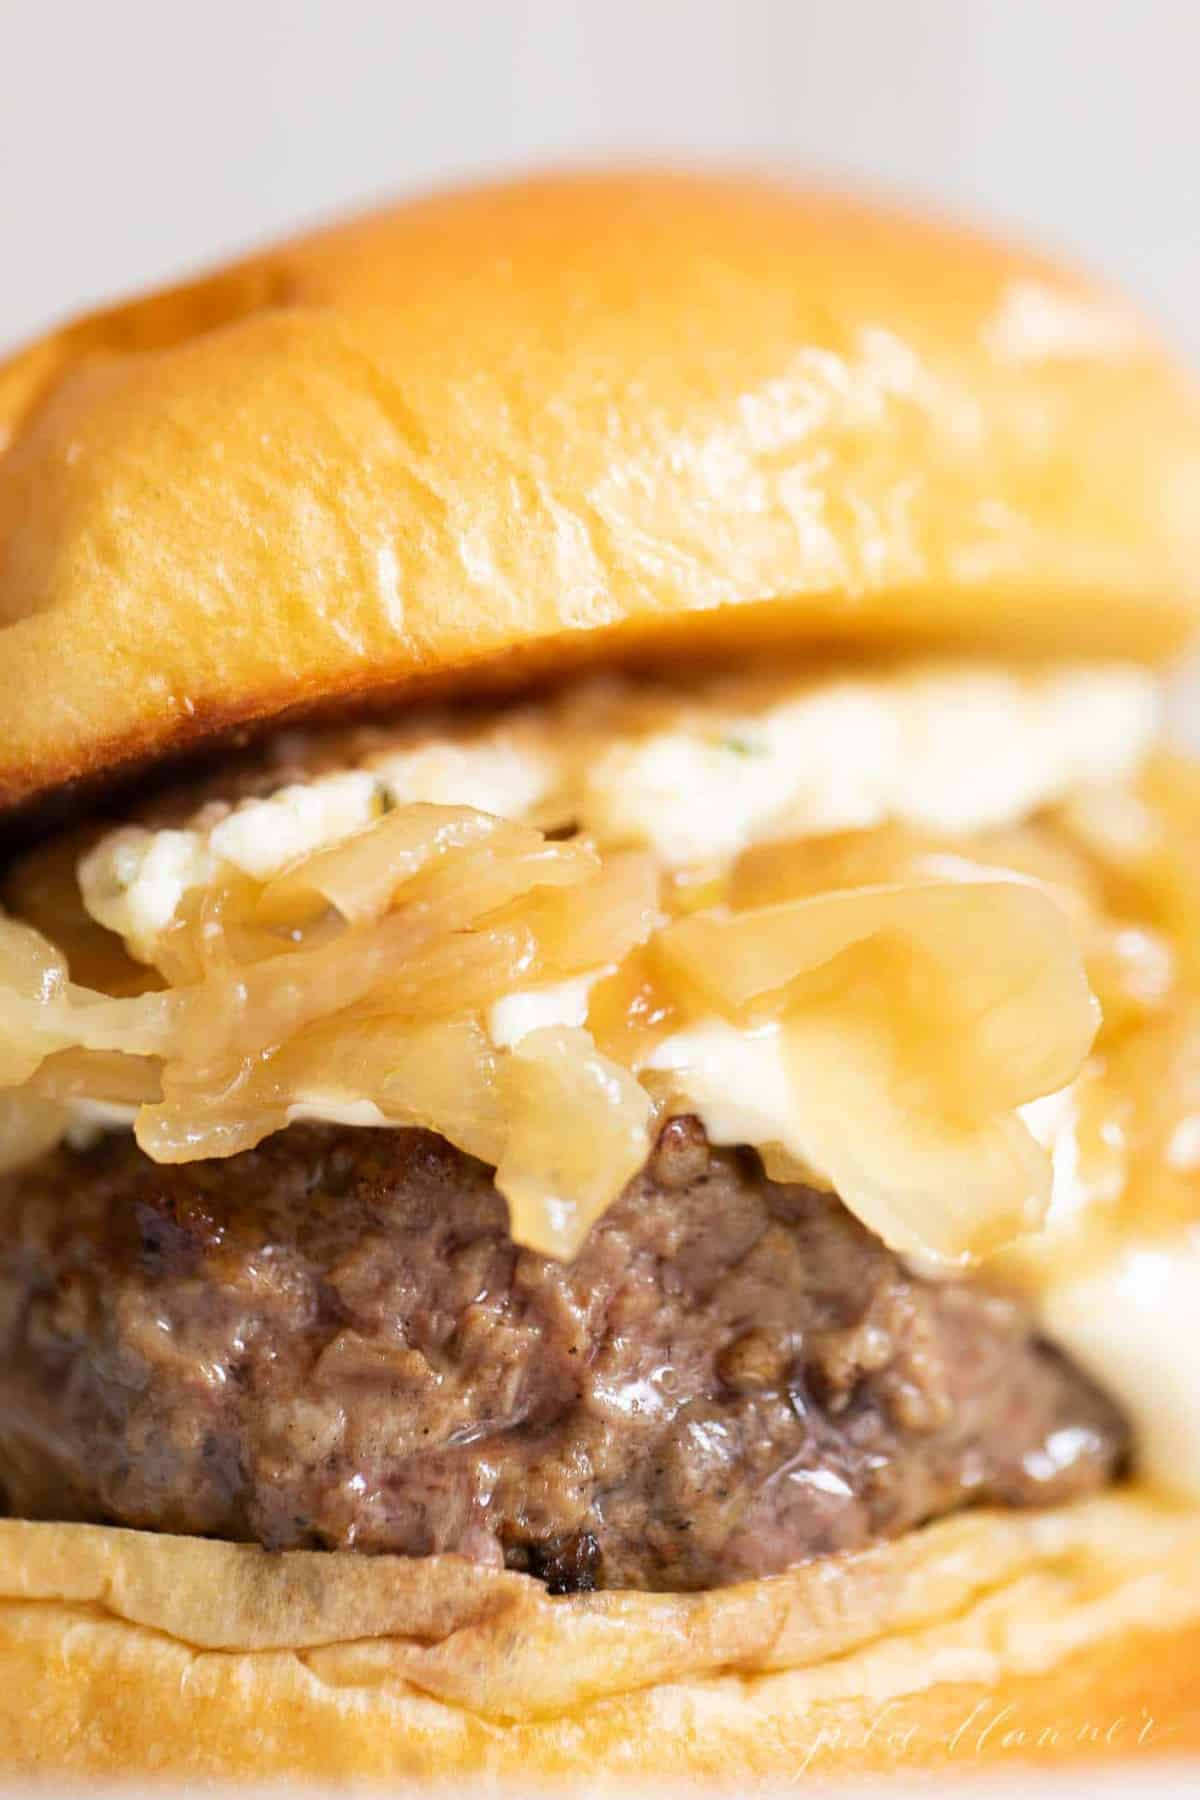 Close up of a gourmet burger with caramelized onions and boursin cheese.